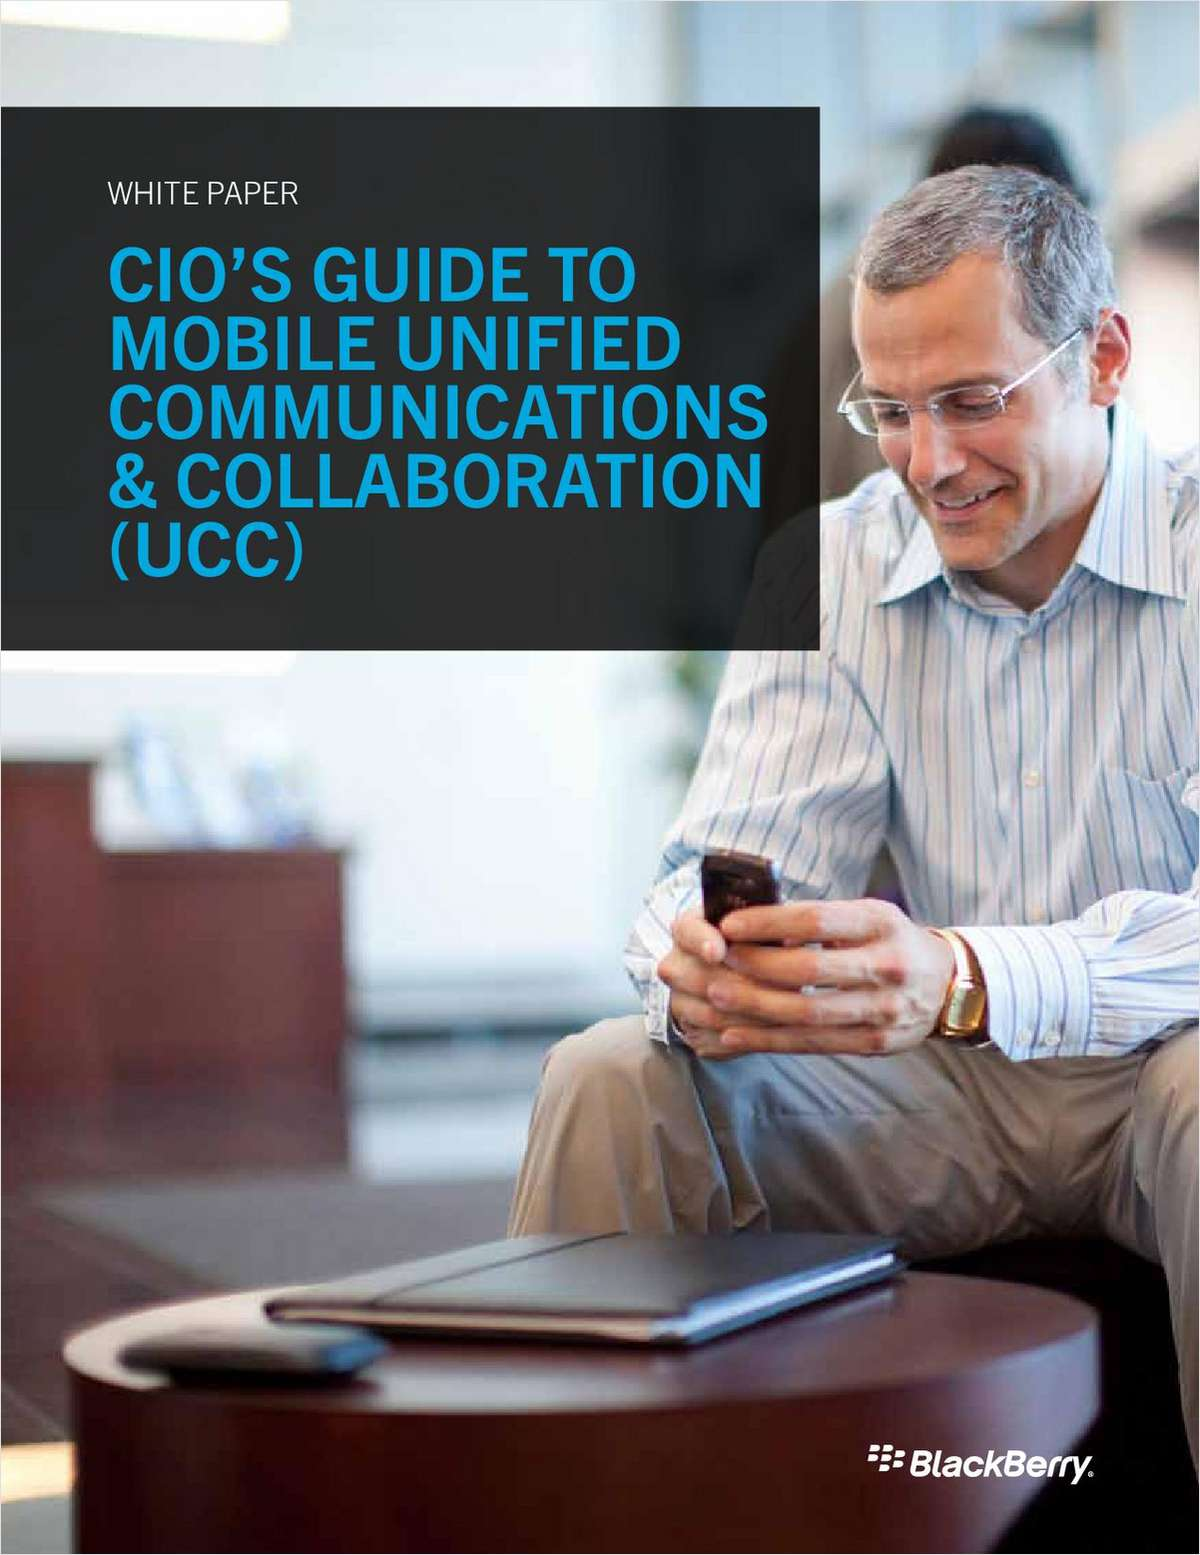 The CIO's Guide to Mobile Unified Communications & Collaboration (UCC)